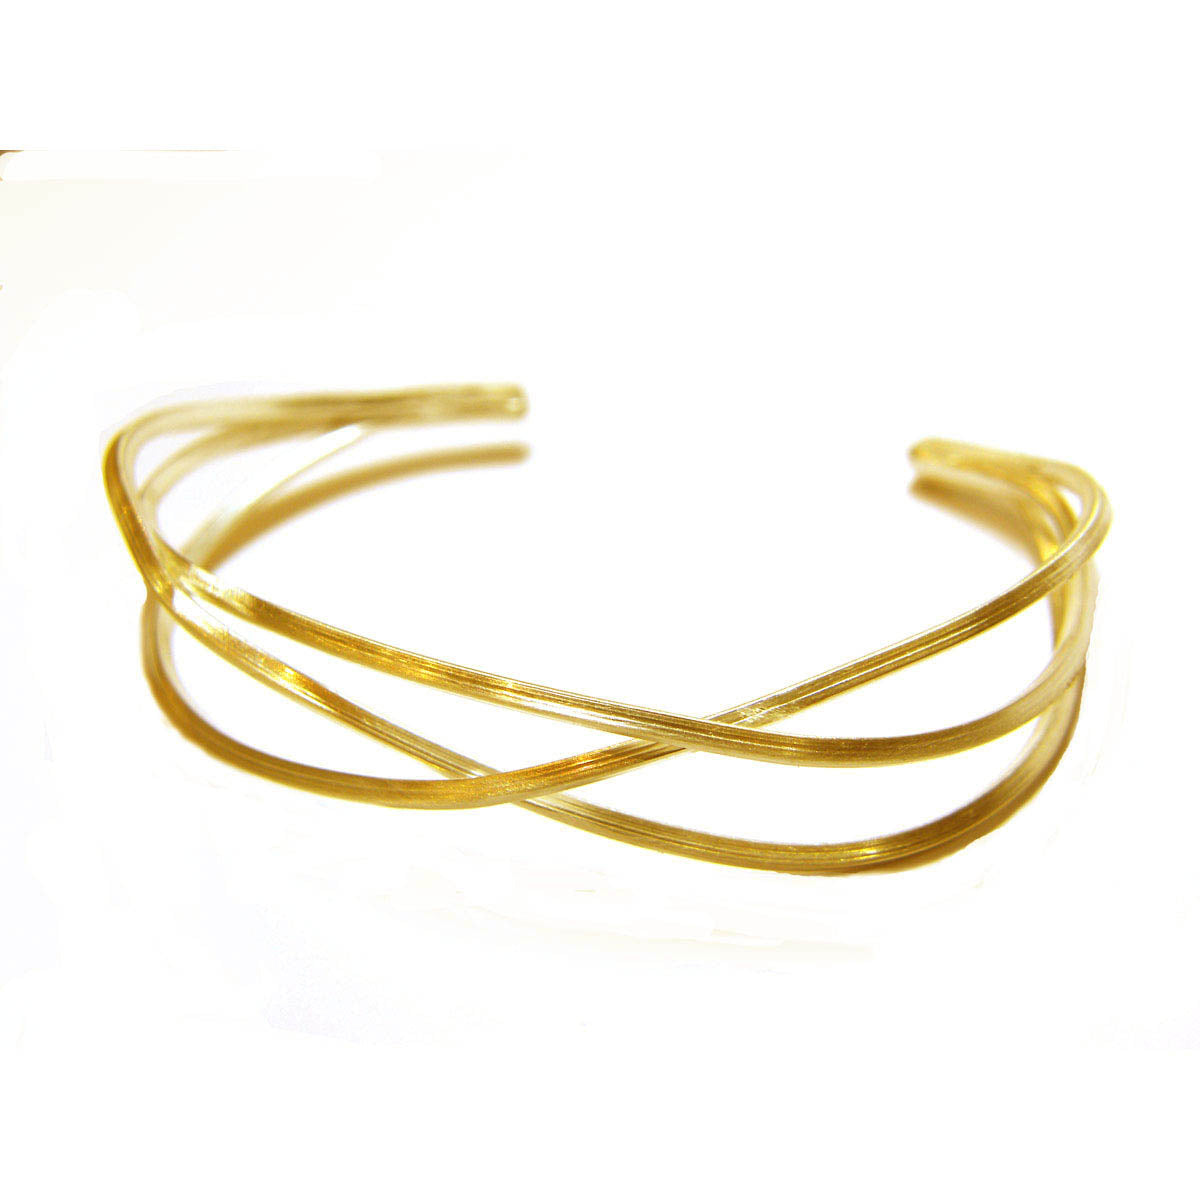 Gail Bracelet - Sterling Silver or 18K Gold Vermeil